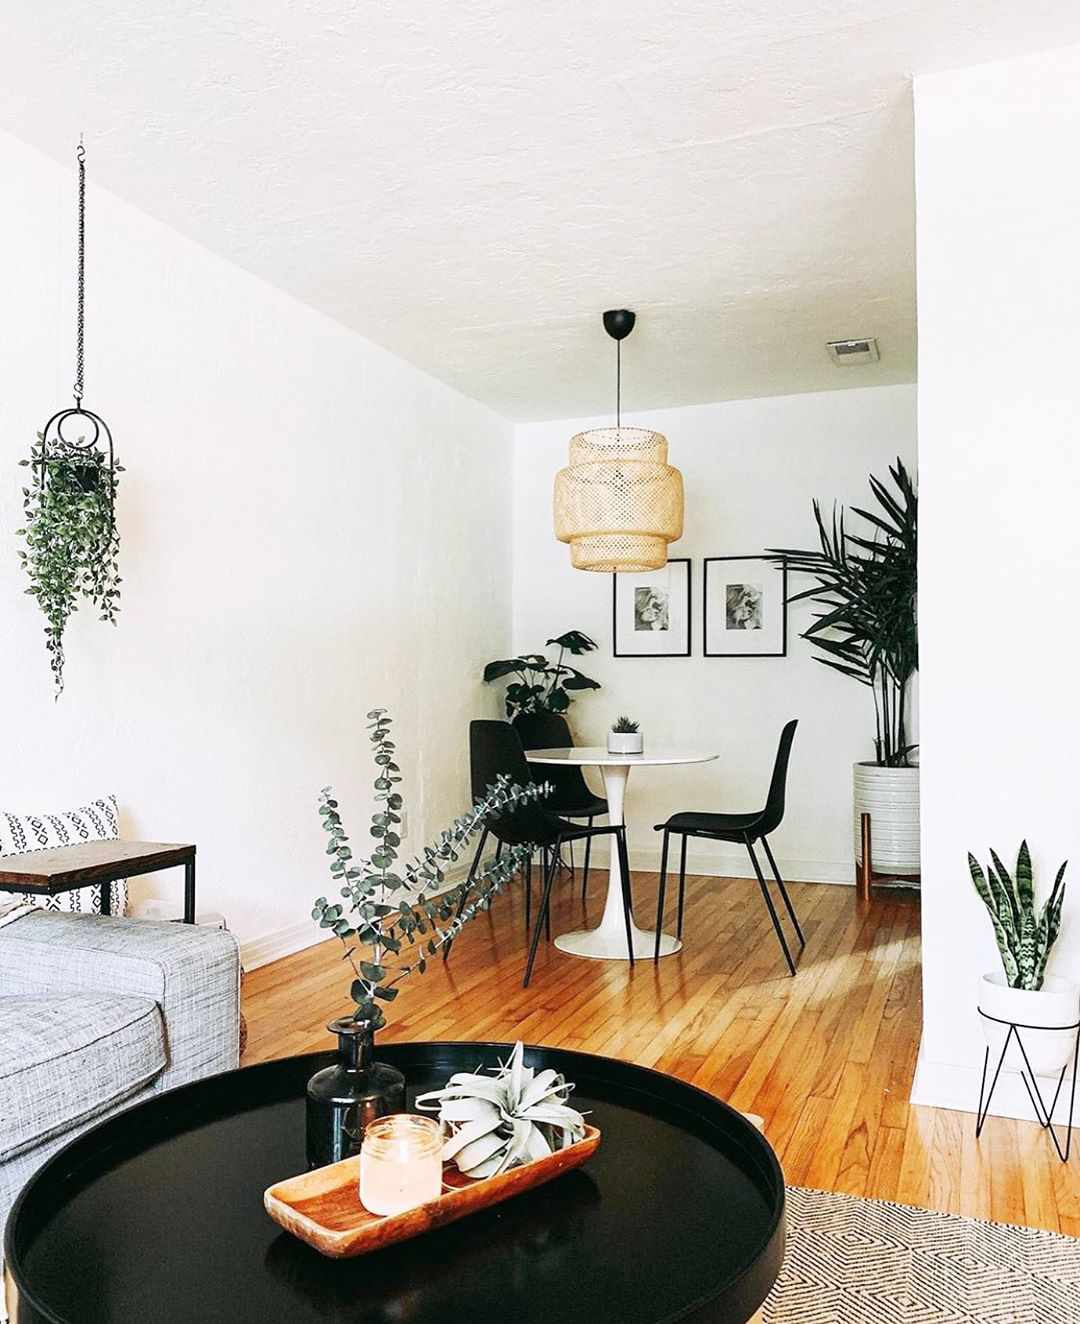 Dining room with lots of greenery